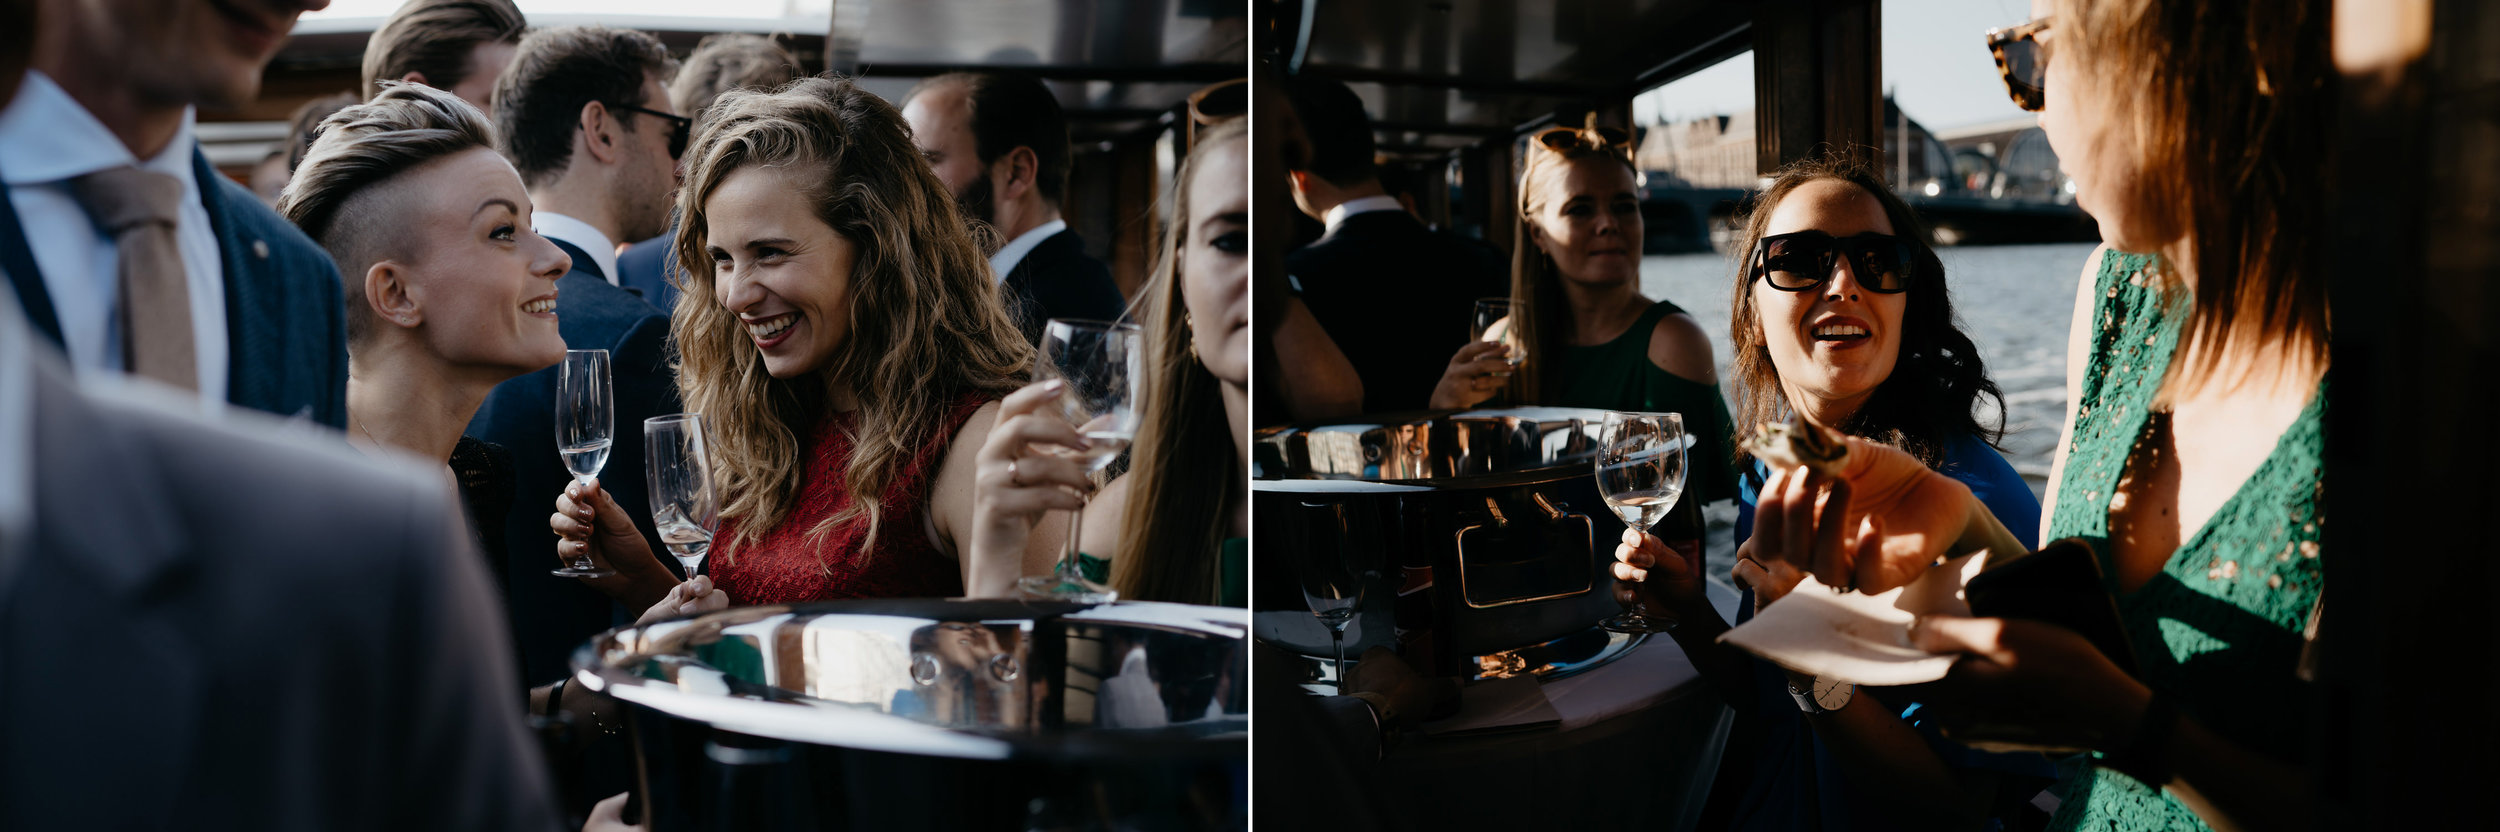 lovely wedding reception on a boat in amsterdam by mark hadden photography